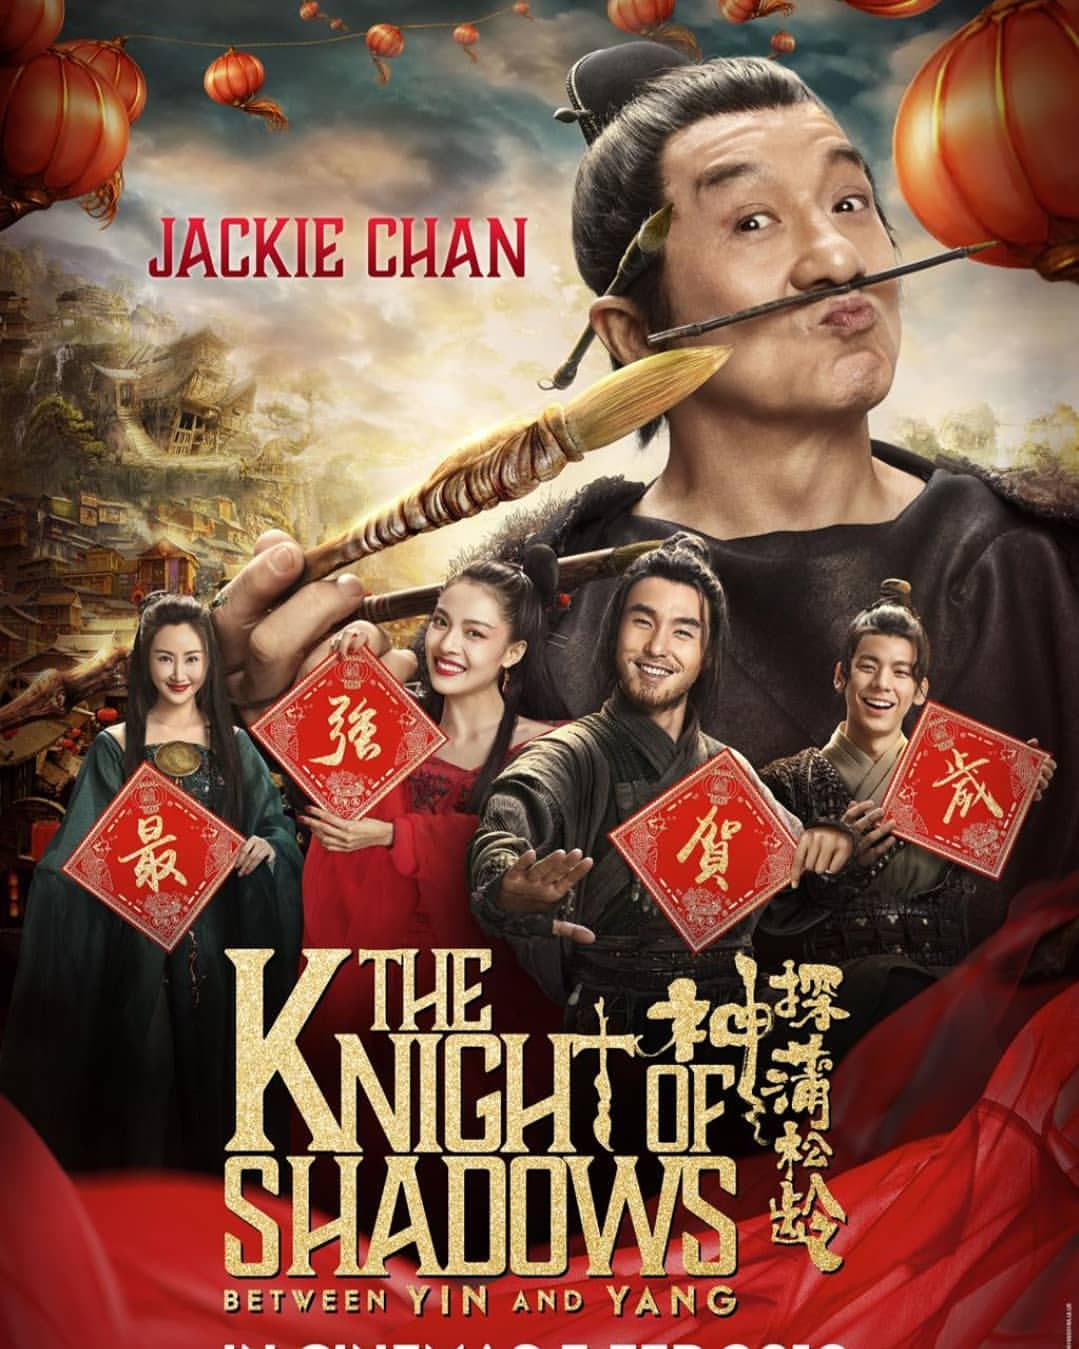 فيلم The Knight Of Shadows: Between Yin And Yang 2019 مترجم